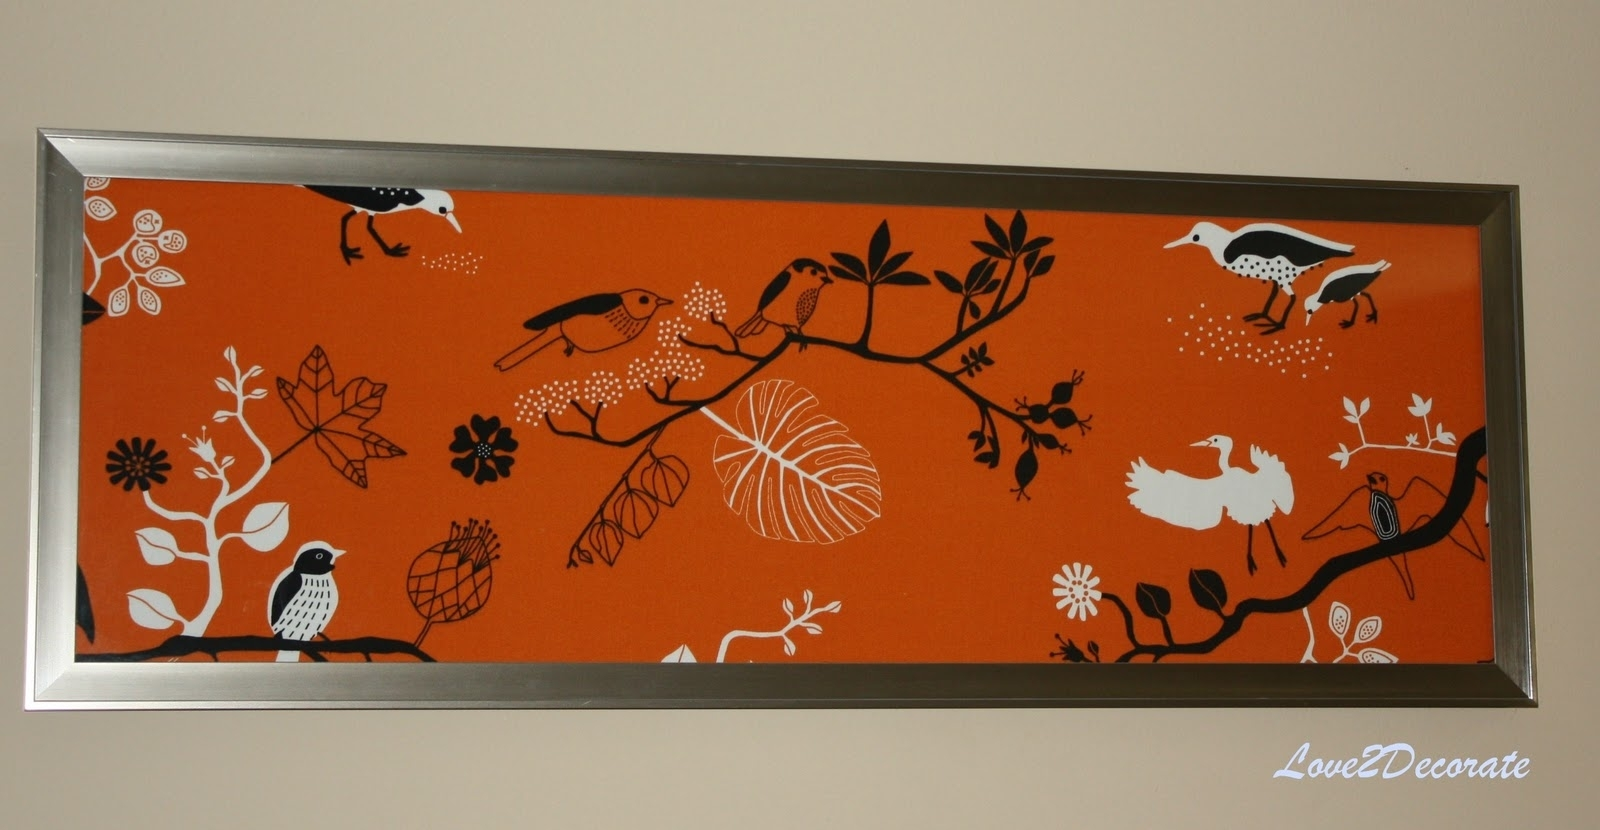 Love 2 Decorate: Frame + Fabric = Wall Art For Most Recent Red Fabric Wall Art (View 10 of 15)